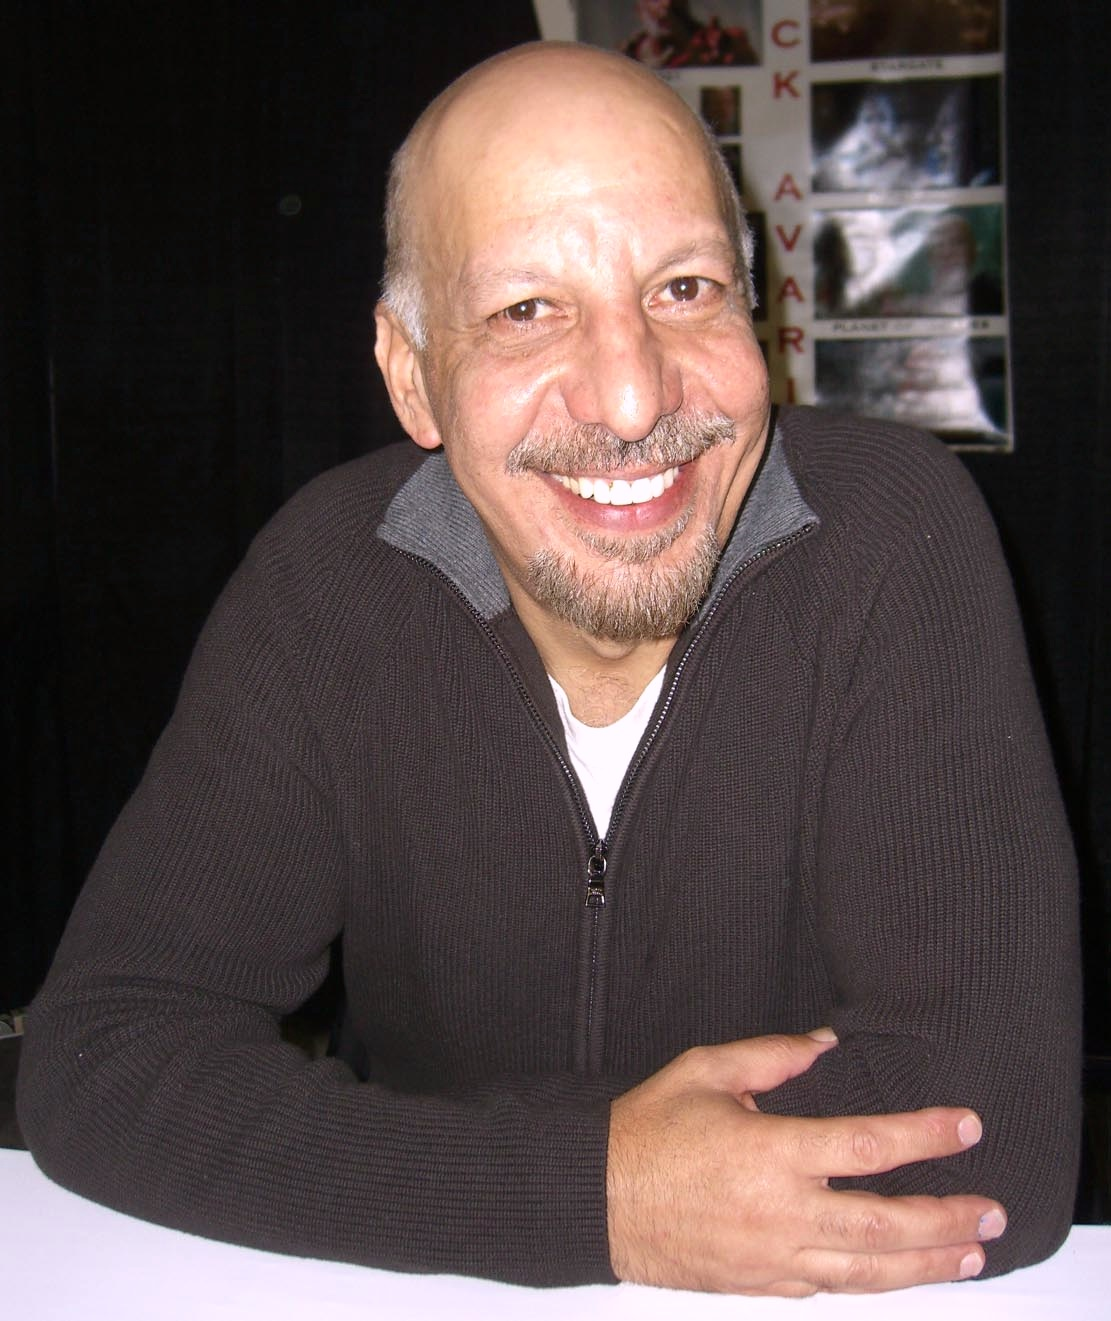 erick avari wikip dia. Black Bedroom Furniture Sets. Home Design Ideas